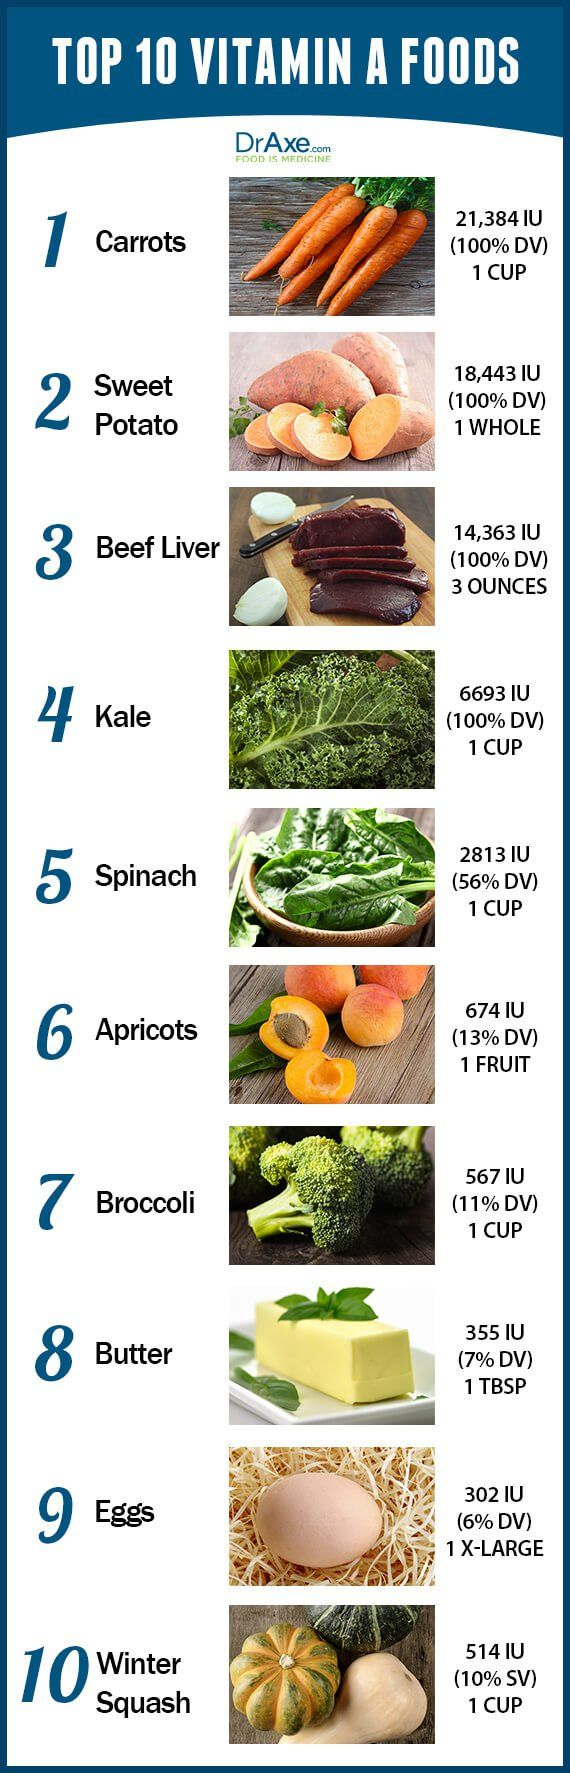 Top 10 Vitamin A Foods List-Vitamin A is a fat soluble vitamin that has a critical role in maintaining healthy vision, neurological function & healthy skin, also plays a role in maintaining strong bones, gene regulation, clear skin, cell differentiation, & immune function. 700mcg/day for women. The current daily value is 5000 IU